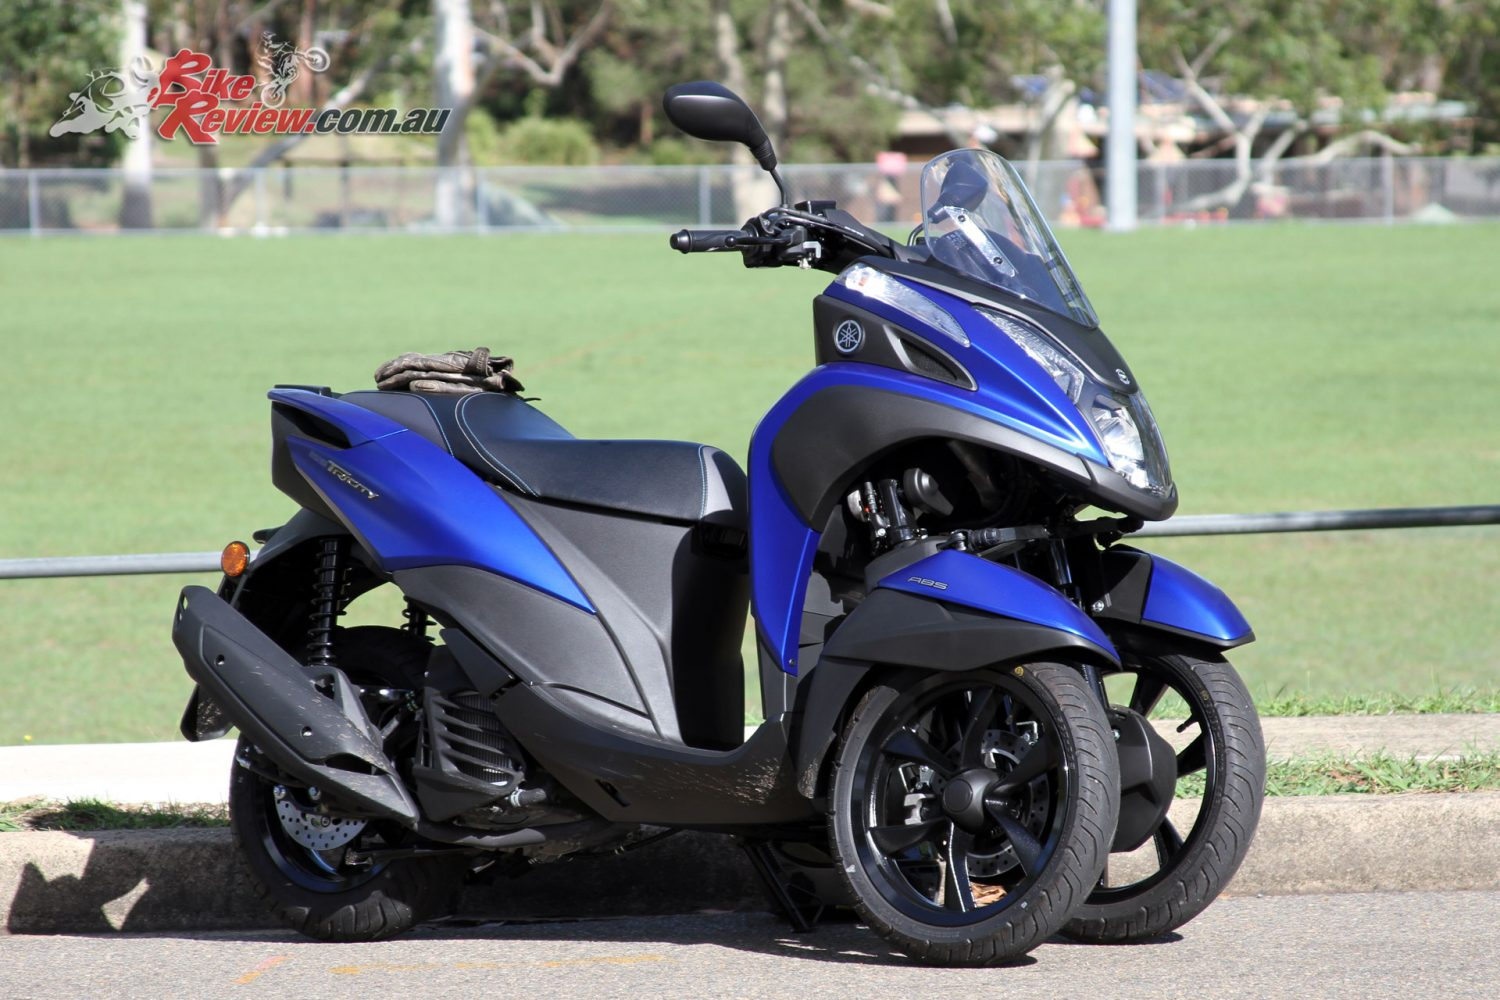 Yamaha's 2018 Tricity 155 ABS